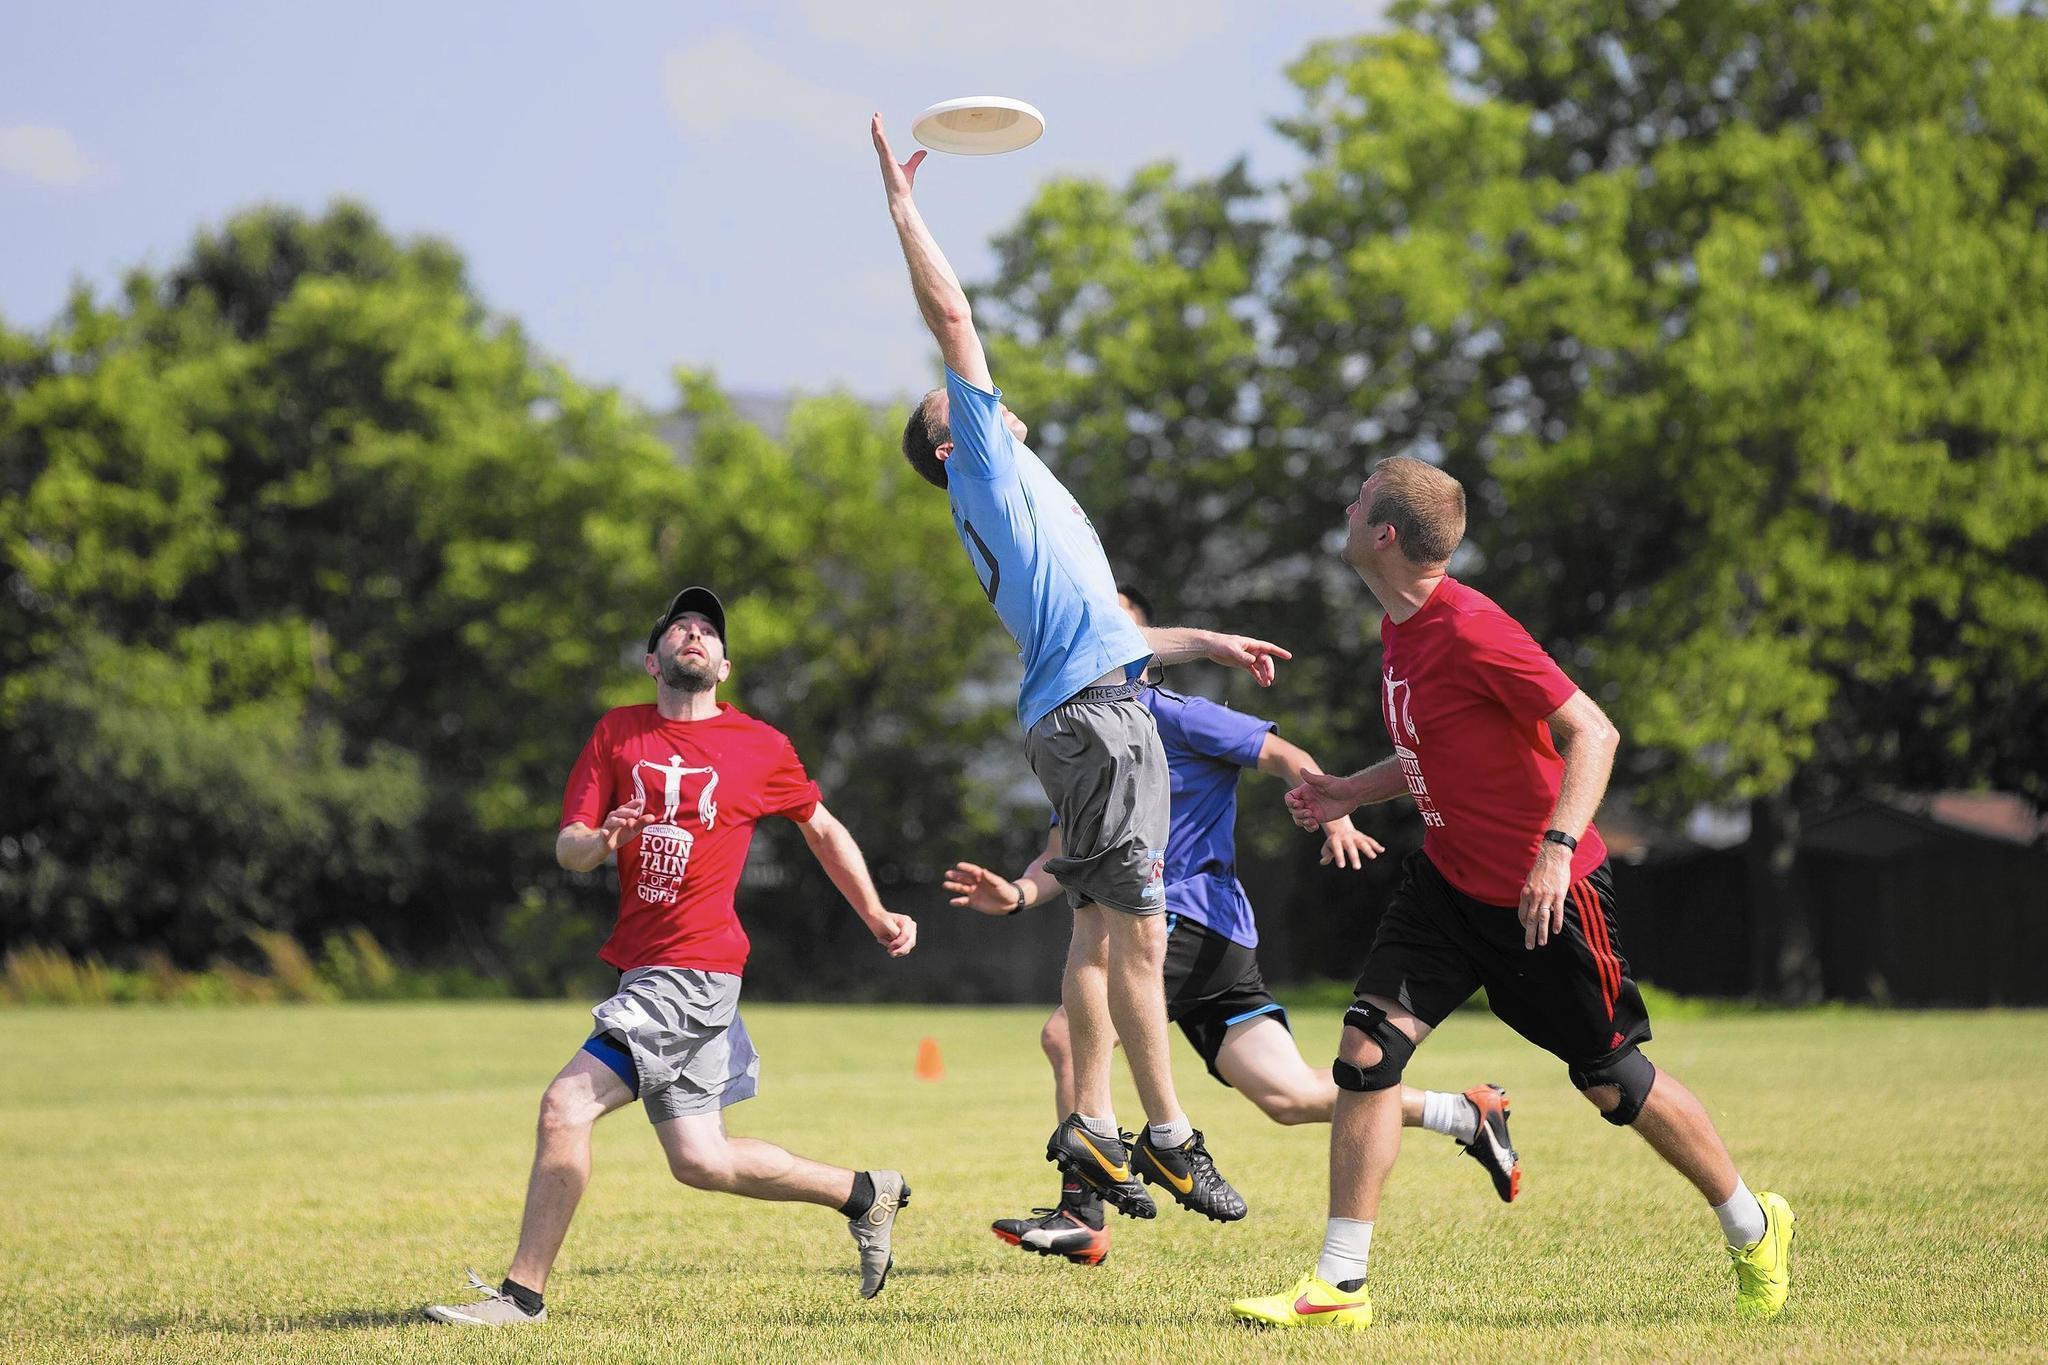 how to win ultimate frisbee